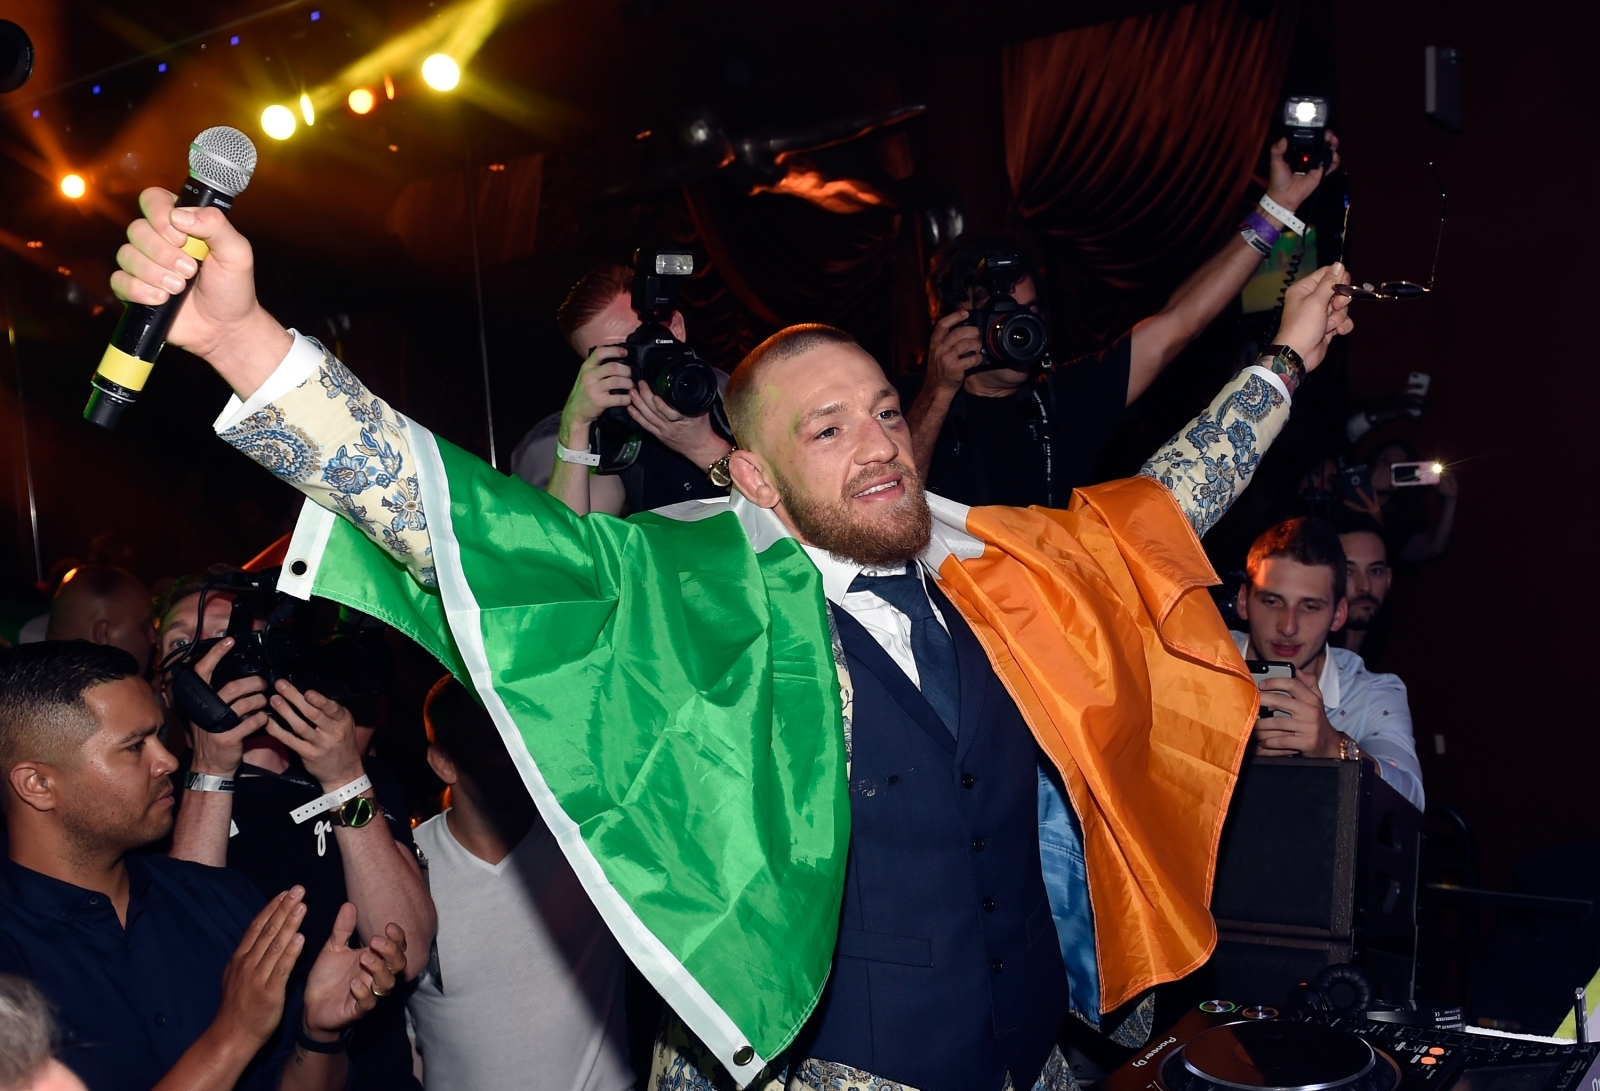 Conor McGregor in talks with 'megabucks' WWE offer for possible WrestleMania match